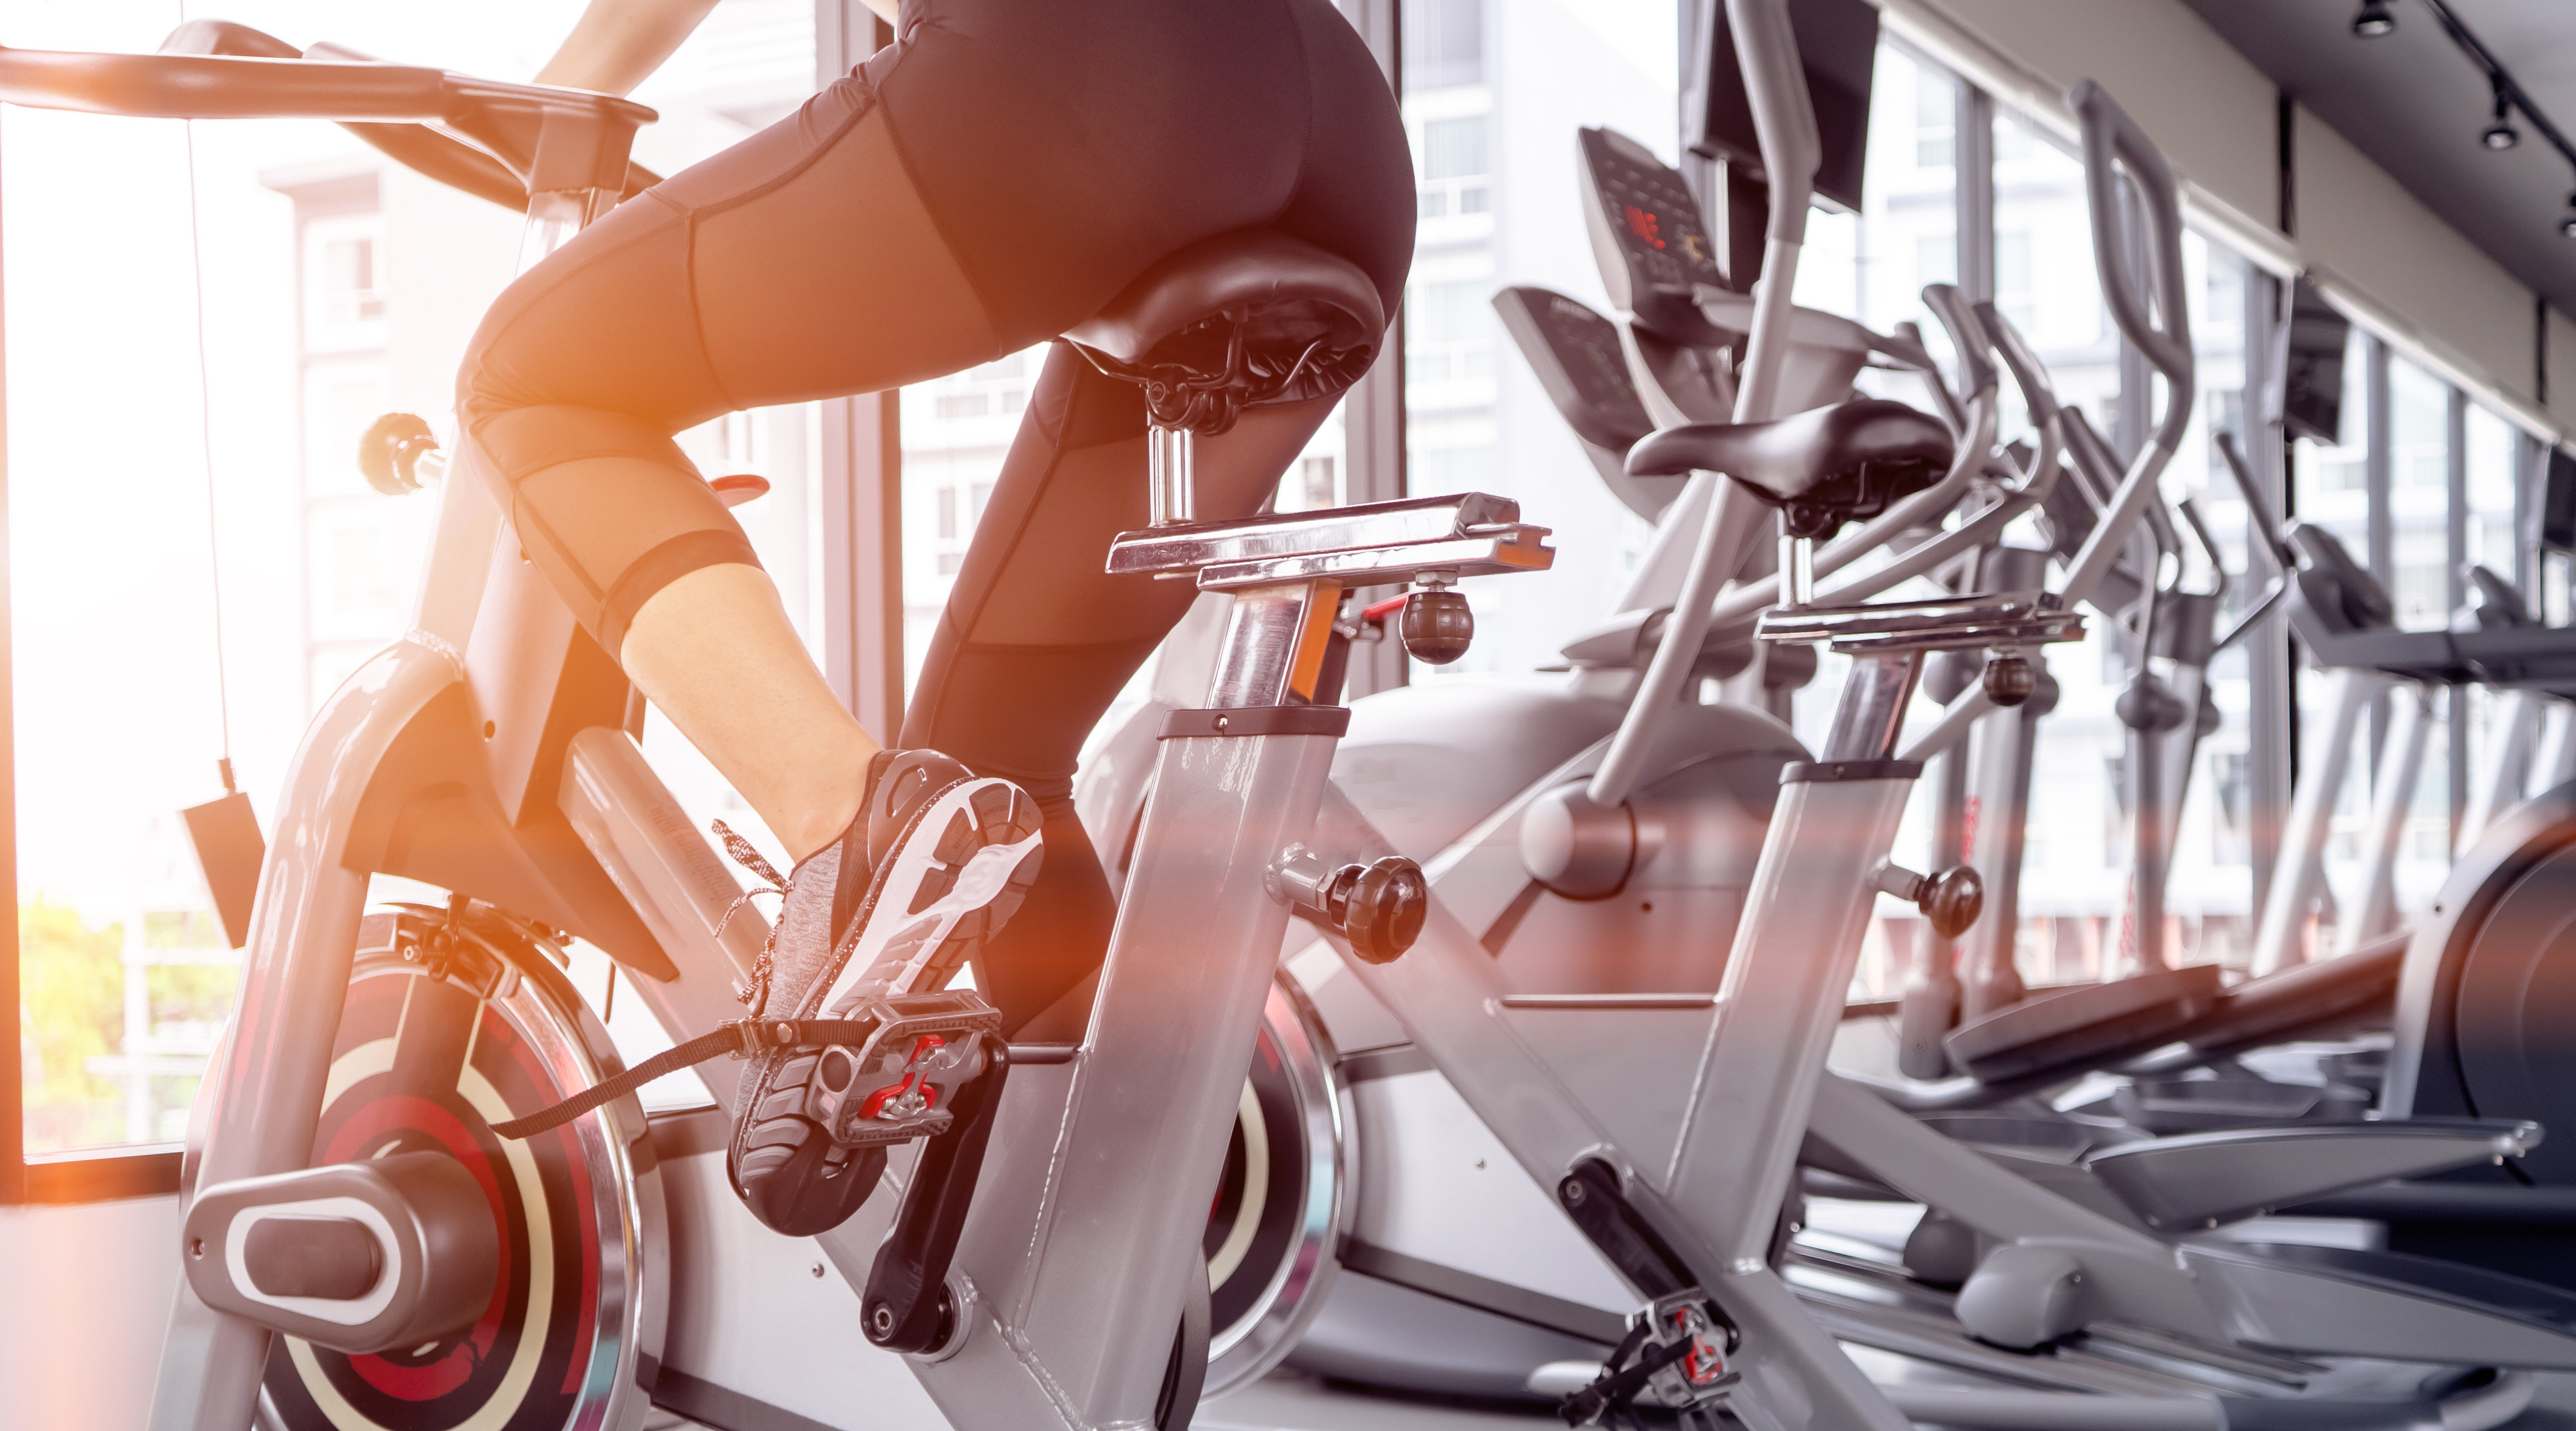 Here's How To Find The Right Shoes For Spin Class